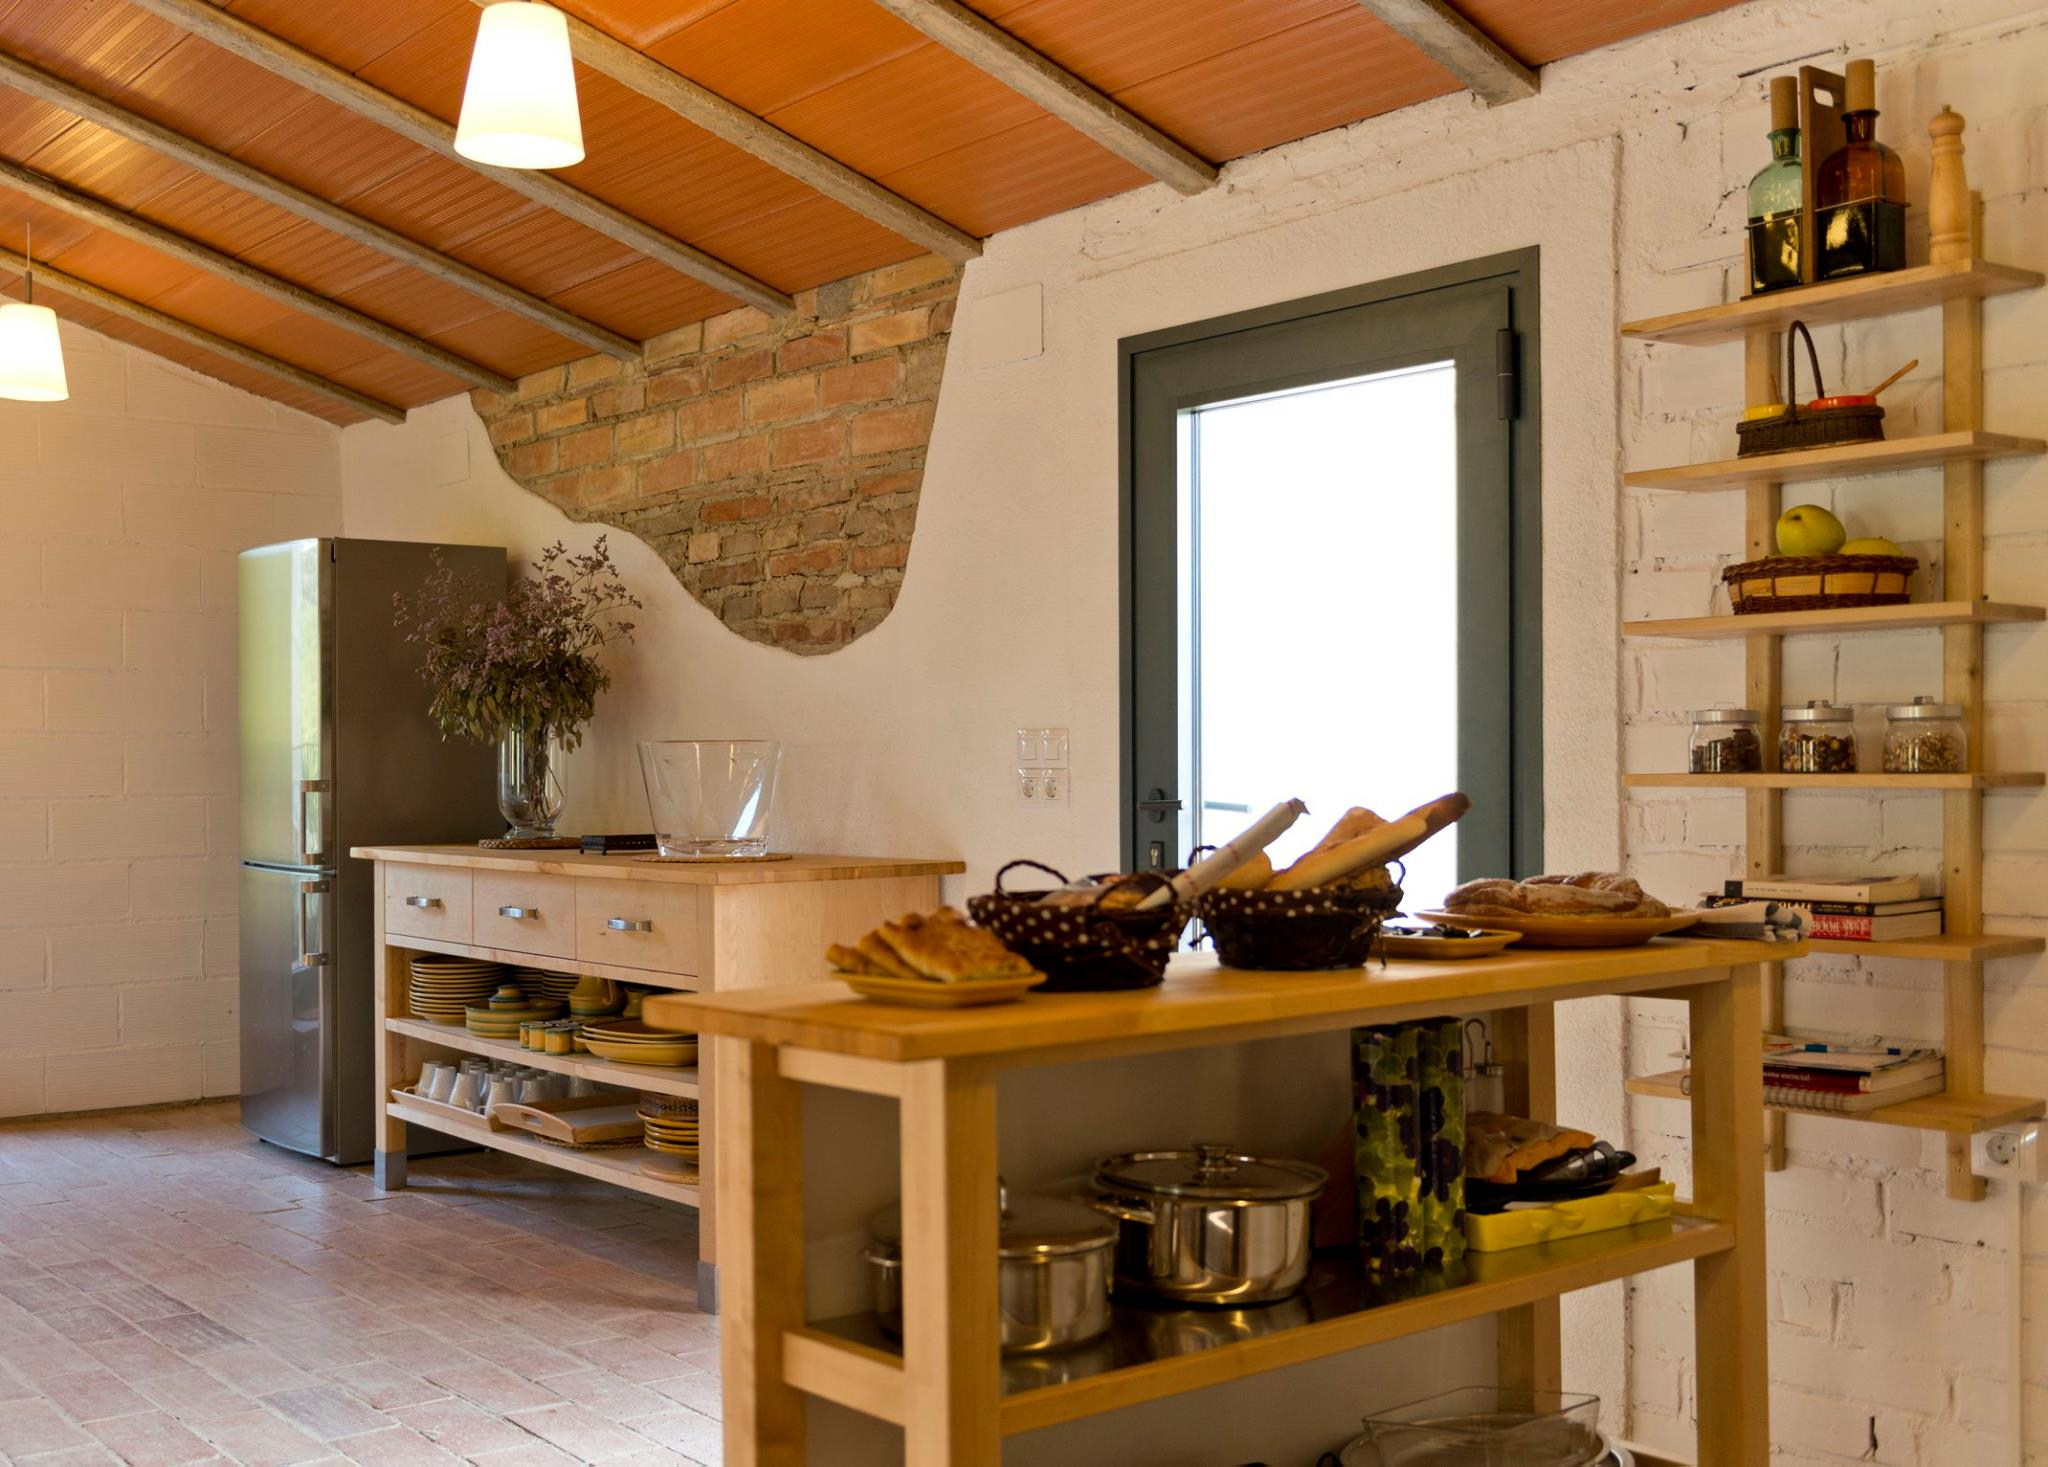 Rustic kitchen fully stocked and equipped